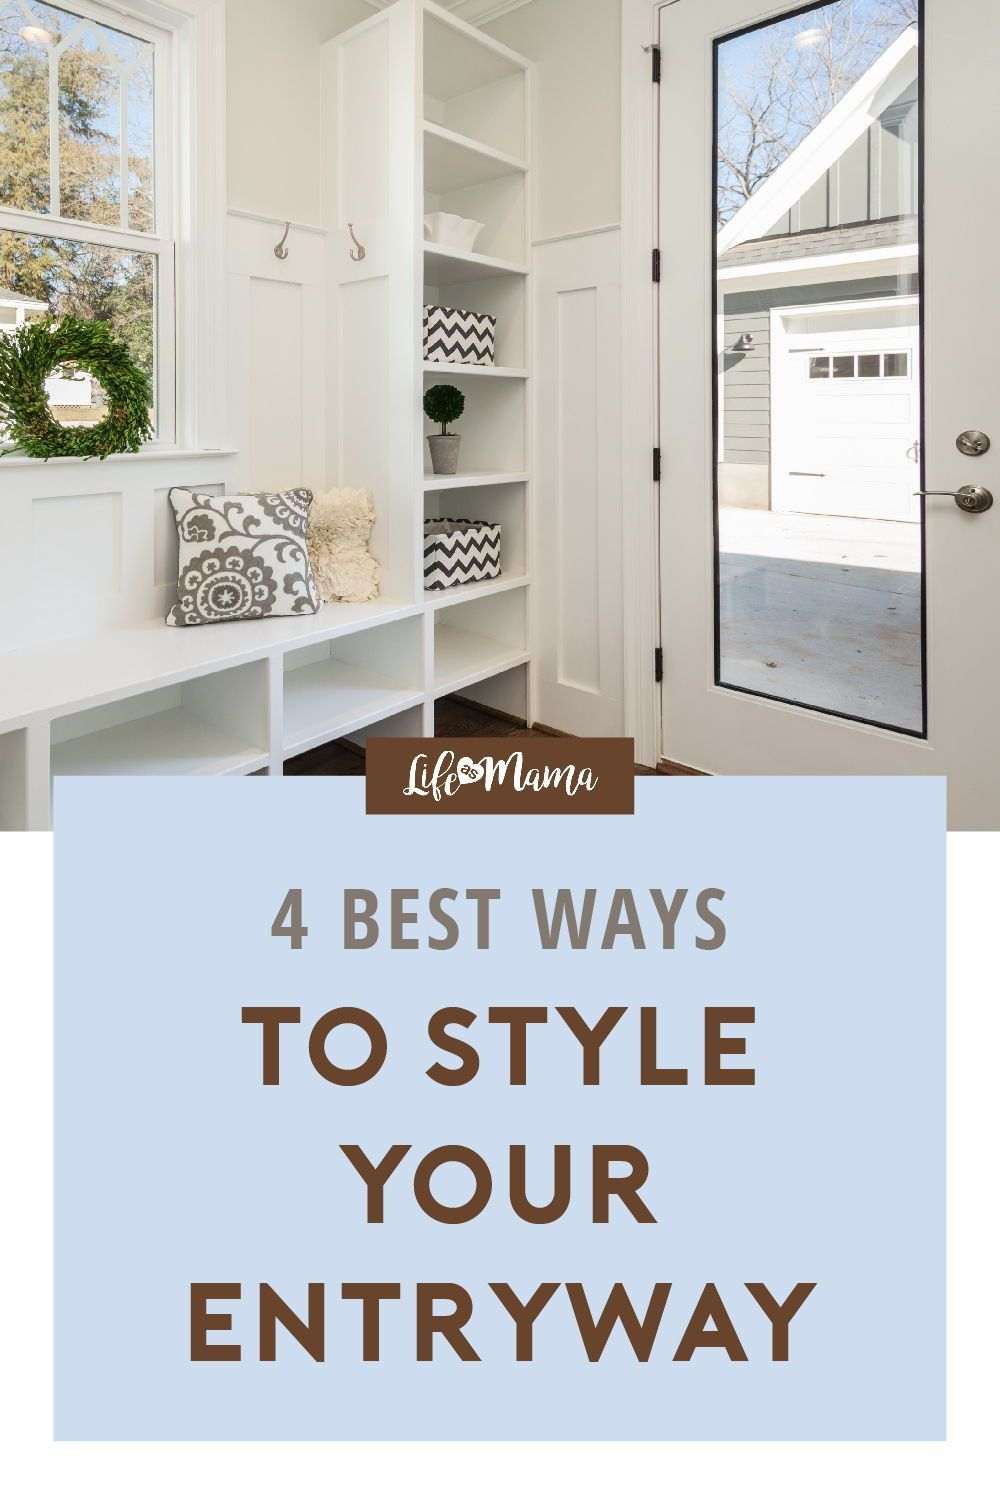 Easy Home Decor The entryway is your first impression of your home. While you have extra time at home why not work on making your entryway beautiful? We share 4 incredibly simple and easy DIY entryway ideas to enhance your home decor. You and your neighbors walking by will appreciate the beautiful display. | #lifeasmama #homedecor #entrywayideas #DIY #decorideas #housegoals.Easy Home Decor  The entryway is your first impression of your home. While you have extra time at home why not work on maki